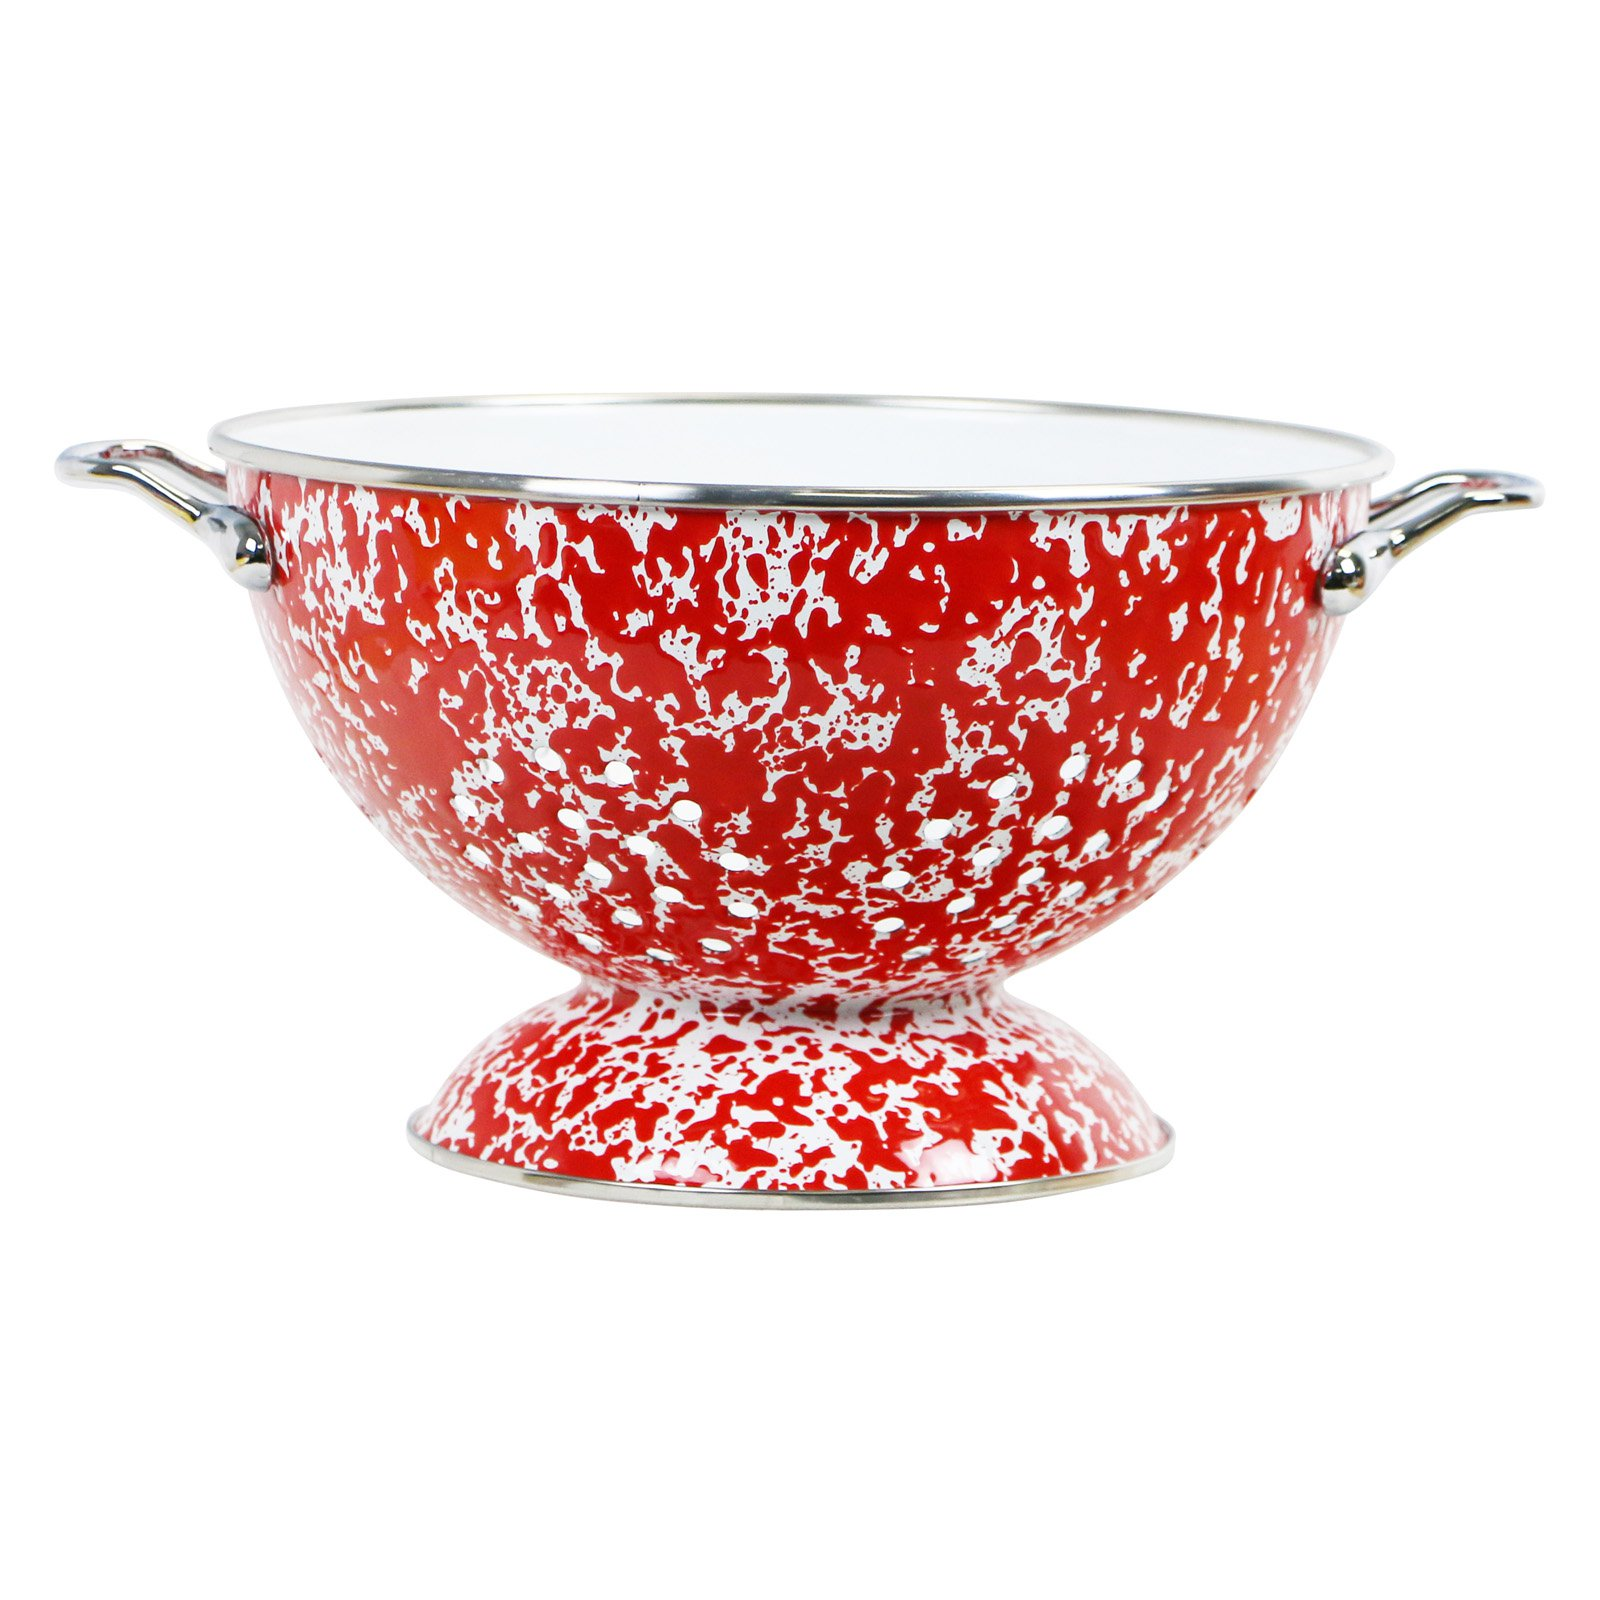 Calypso Basics, Enamel on Steel Marble Effect 3 Qt. Colander, Red Marble